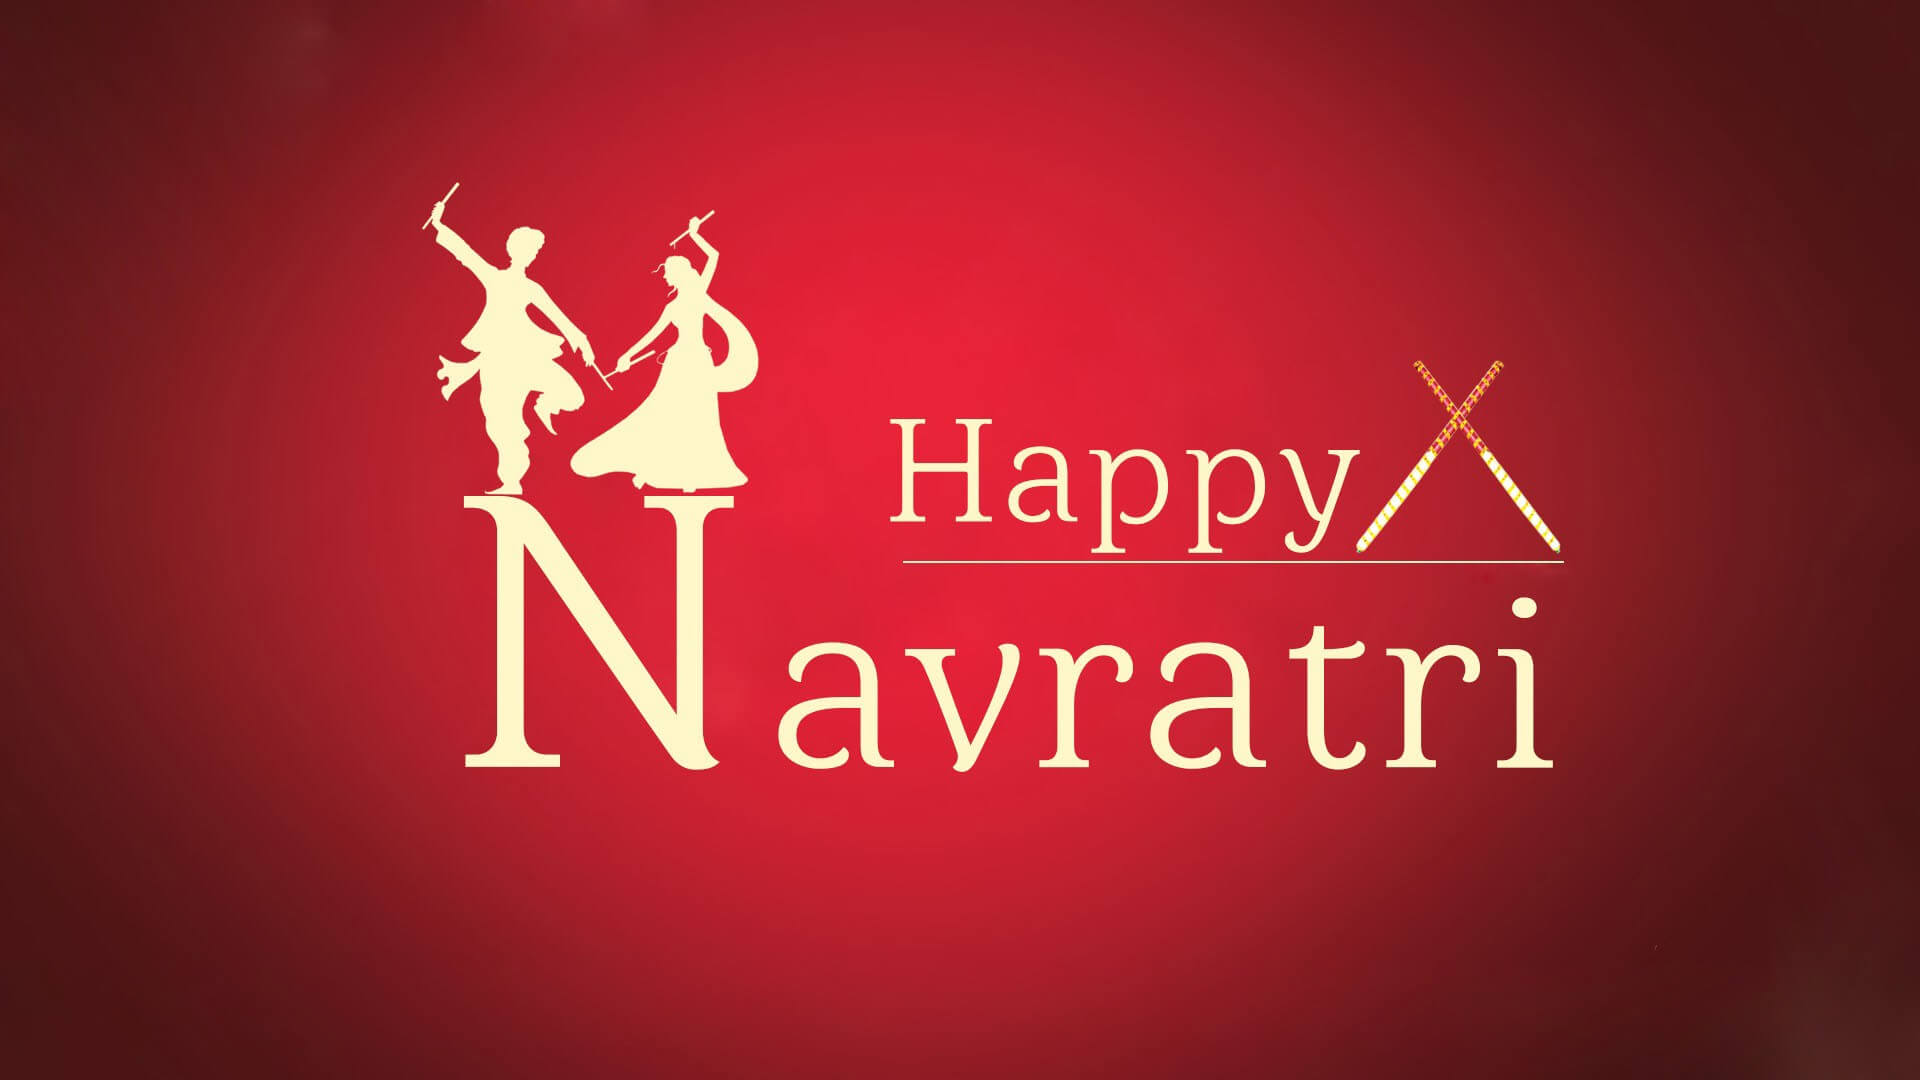 happy navratri 2018 wallpaper